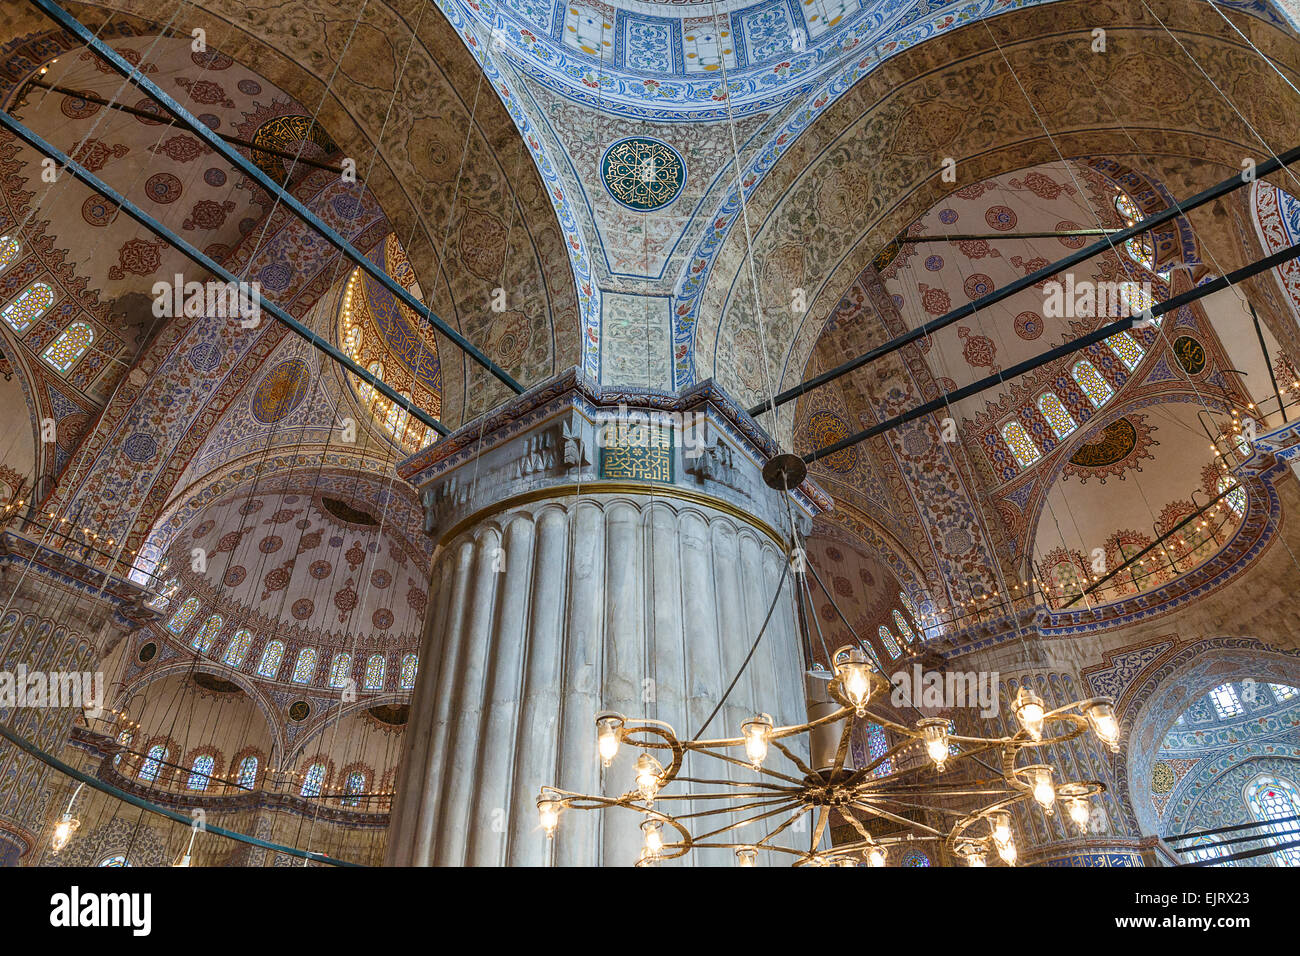 Dome of the mosque of Sultan Ahmed in Istanbul - Stock Image